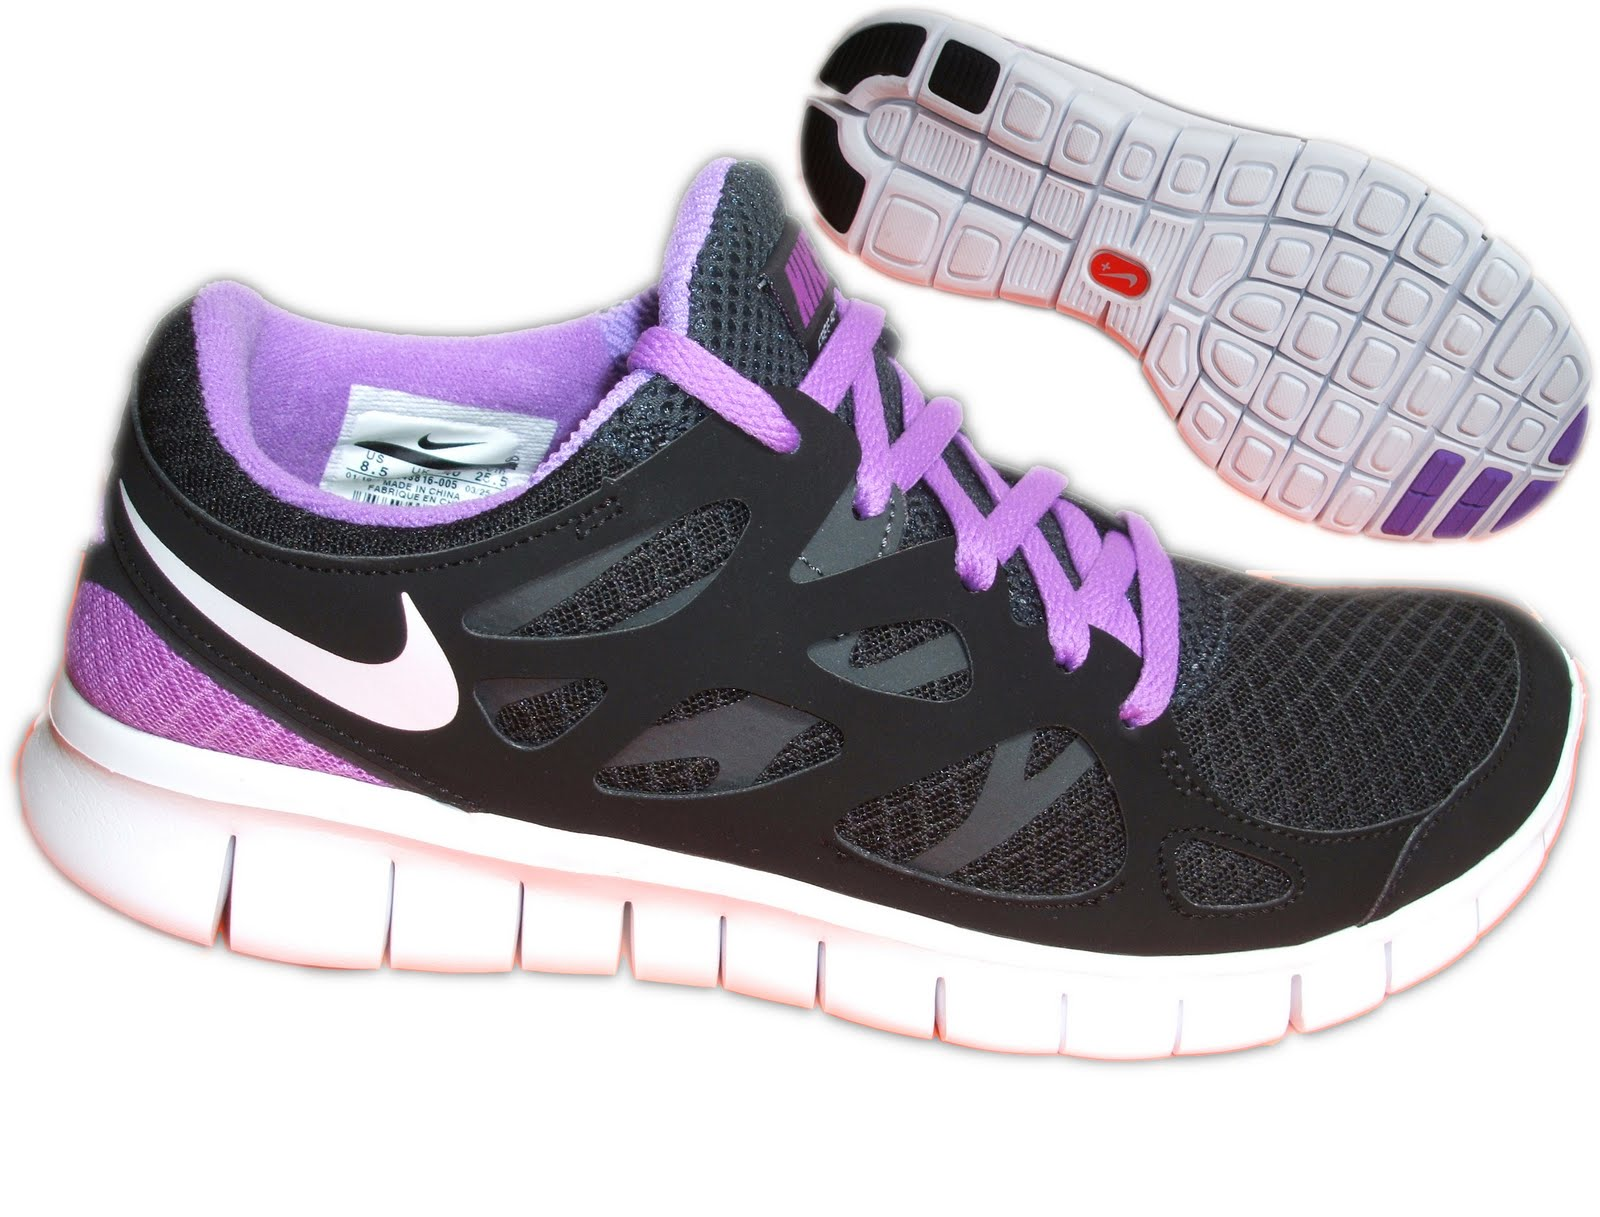 Creative  Shoe Multi Women Nike Sports Shoes S31r9099  Nike Womens Shoes